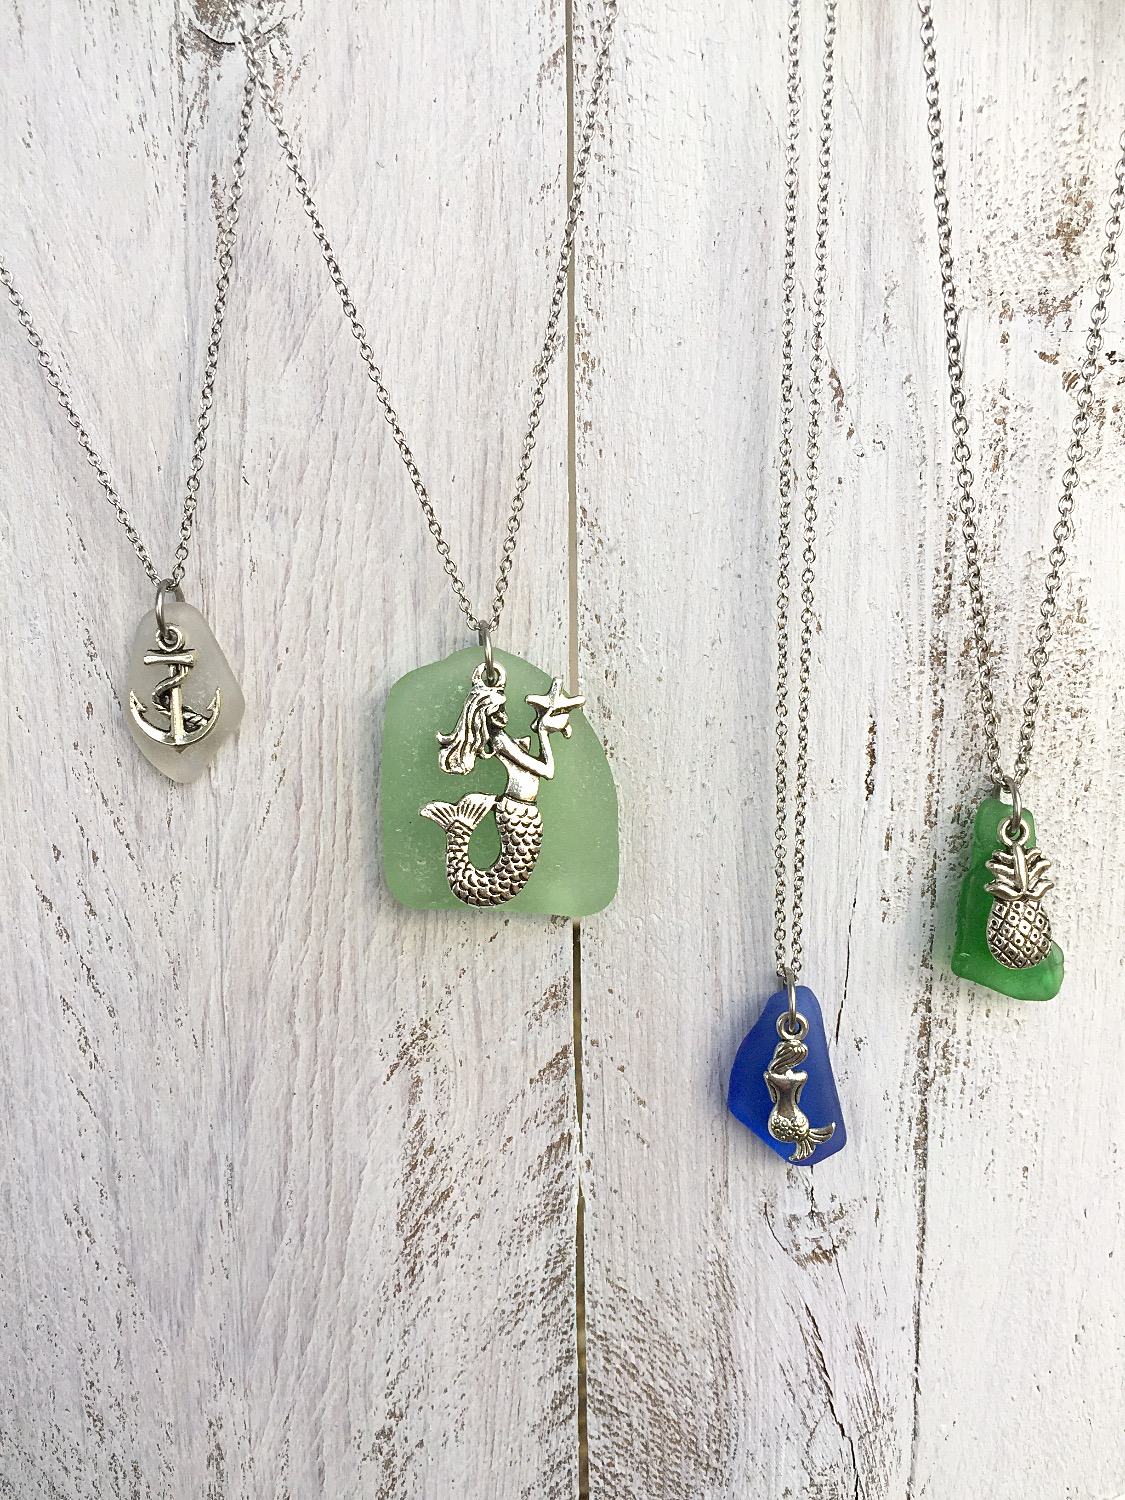 Sea Glass Charm Necklaces